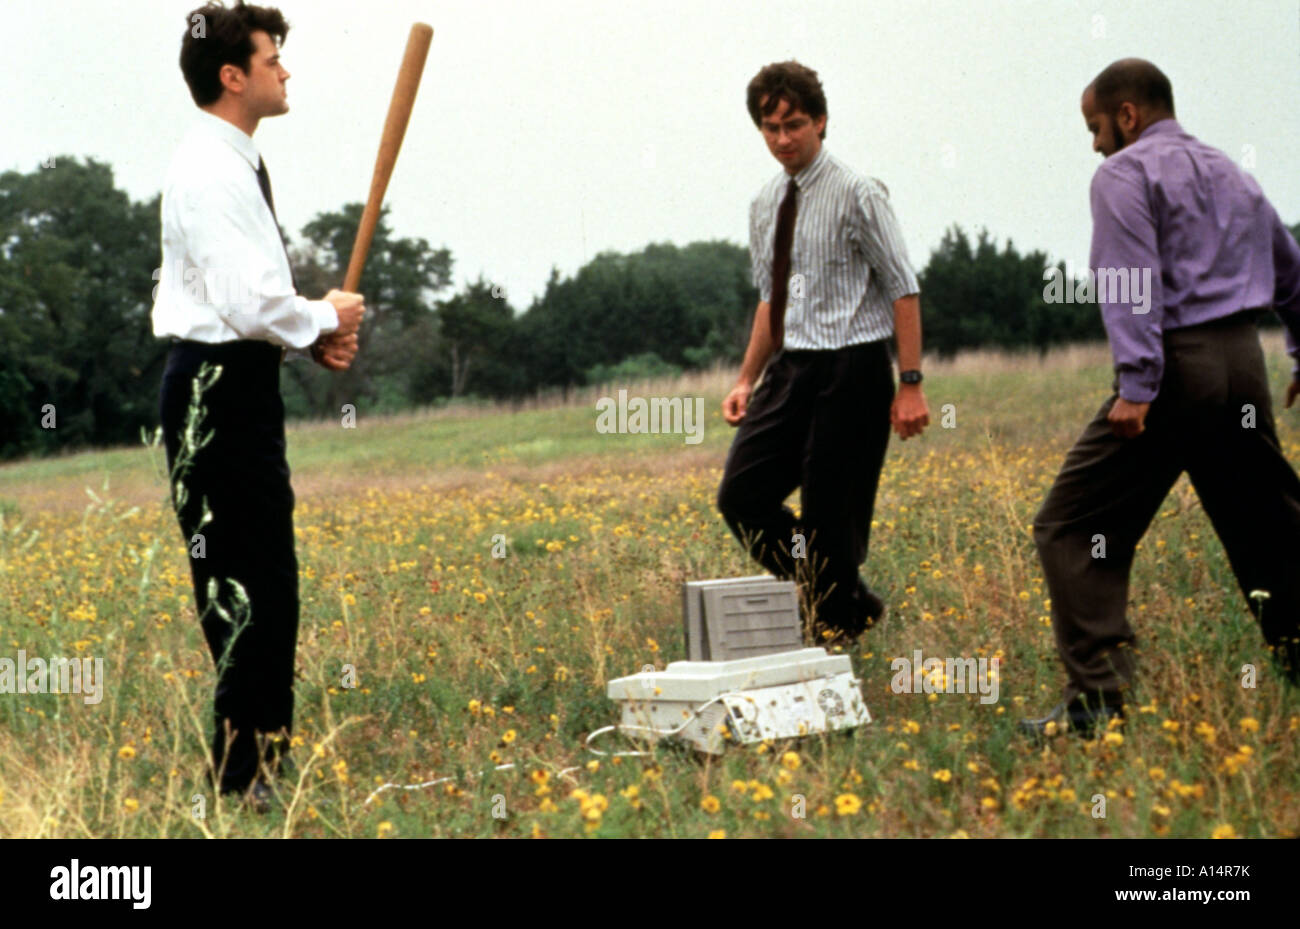 Office Space Year 1999 Director Mike Judge Ron Livingston David Herman Ajay Naidu Stock Photo